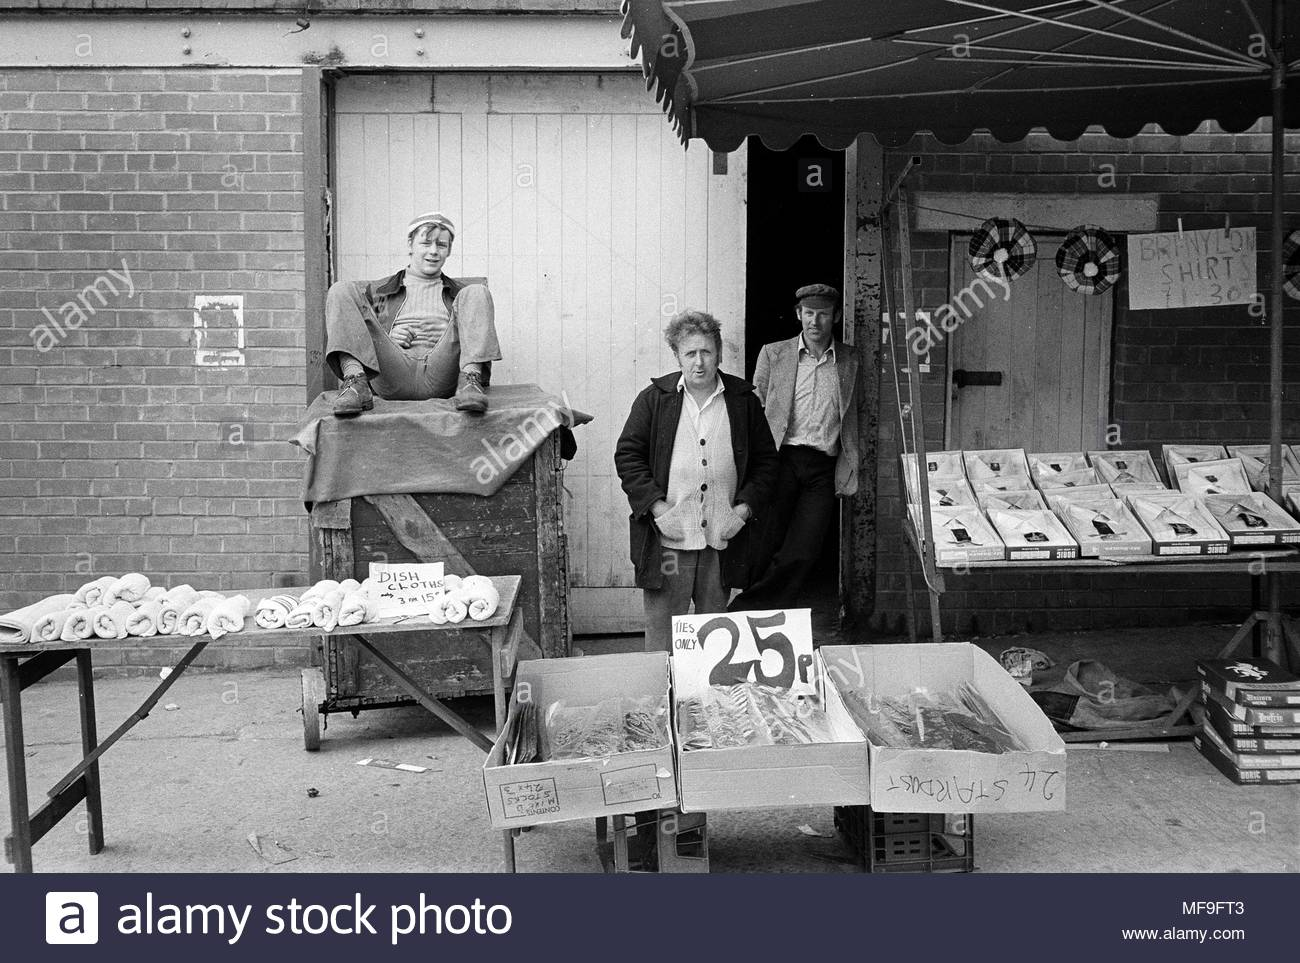 Male vendors on their stall on Tommyfield Market in Oldham Northwest England UK in the 1970s   photo DON TONGE Photographer - Stock Image